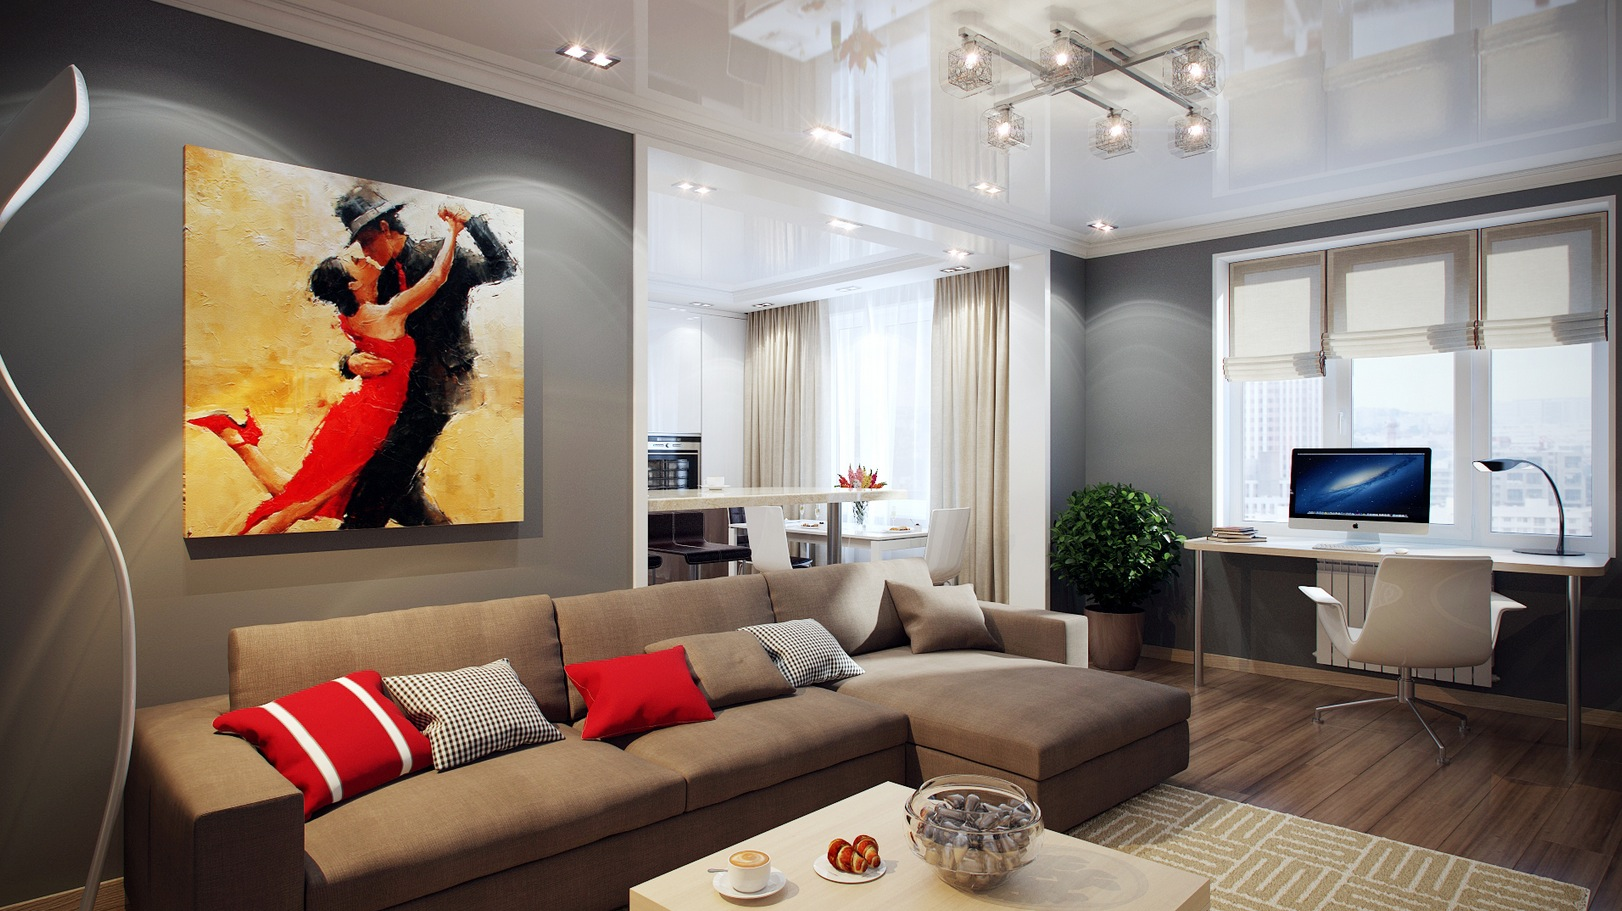 Grey And Brown Living Room Ideas Of Striking Home Visualizations By Pavel Vetrov